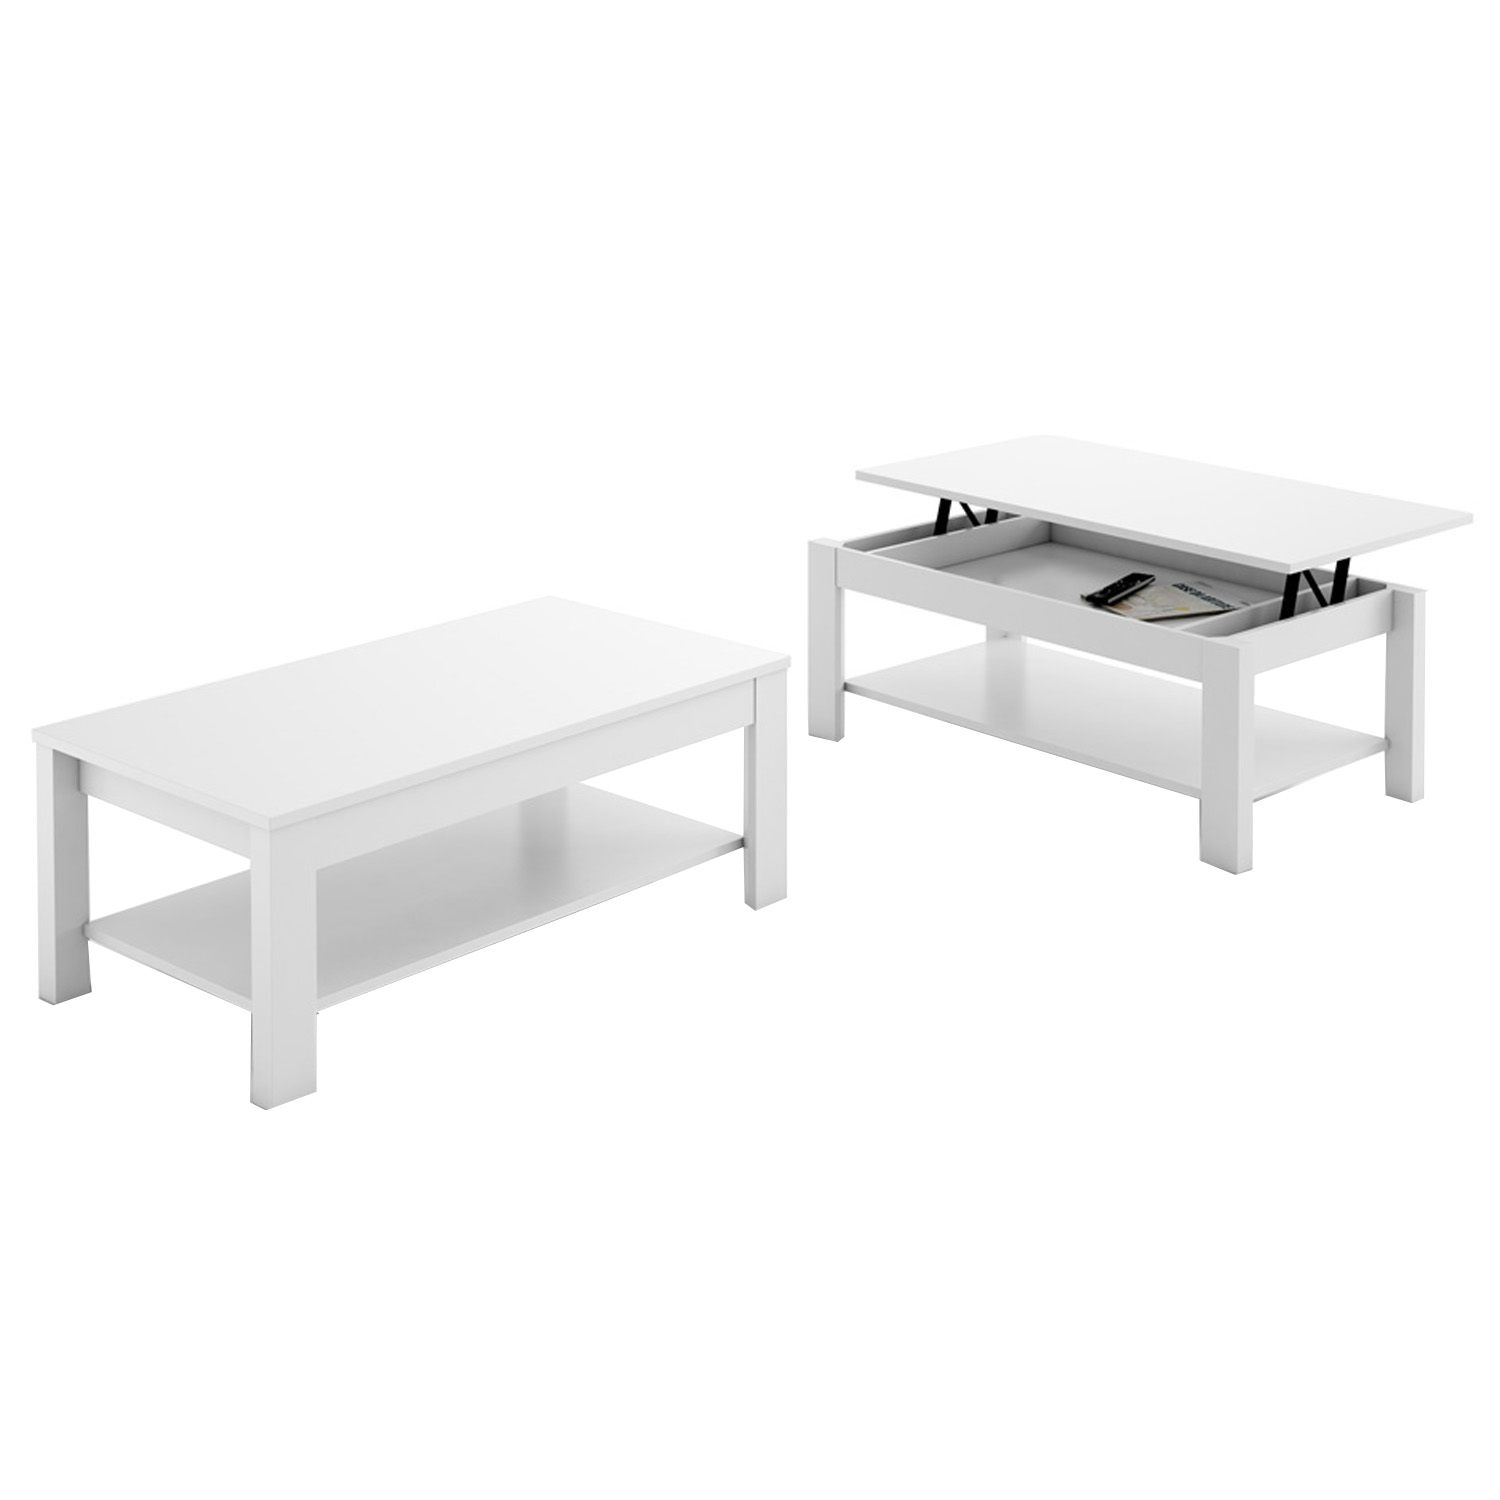 Table basse relevable oralia couleur blanc dim l 110 x p - Mecanisme table basse relevable ...